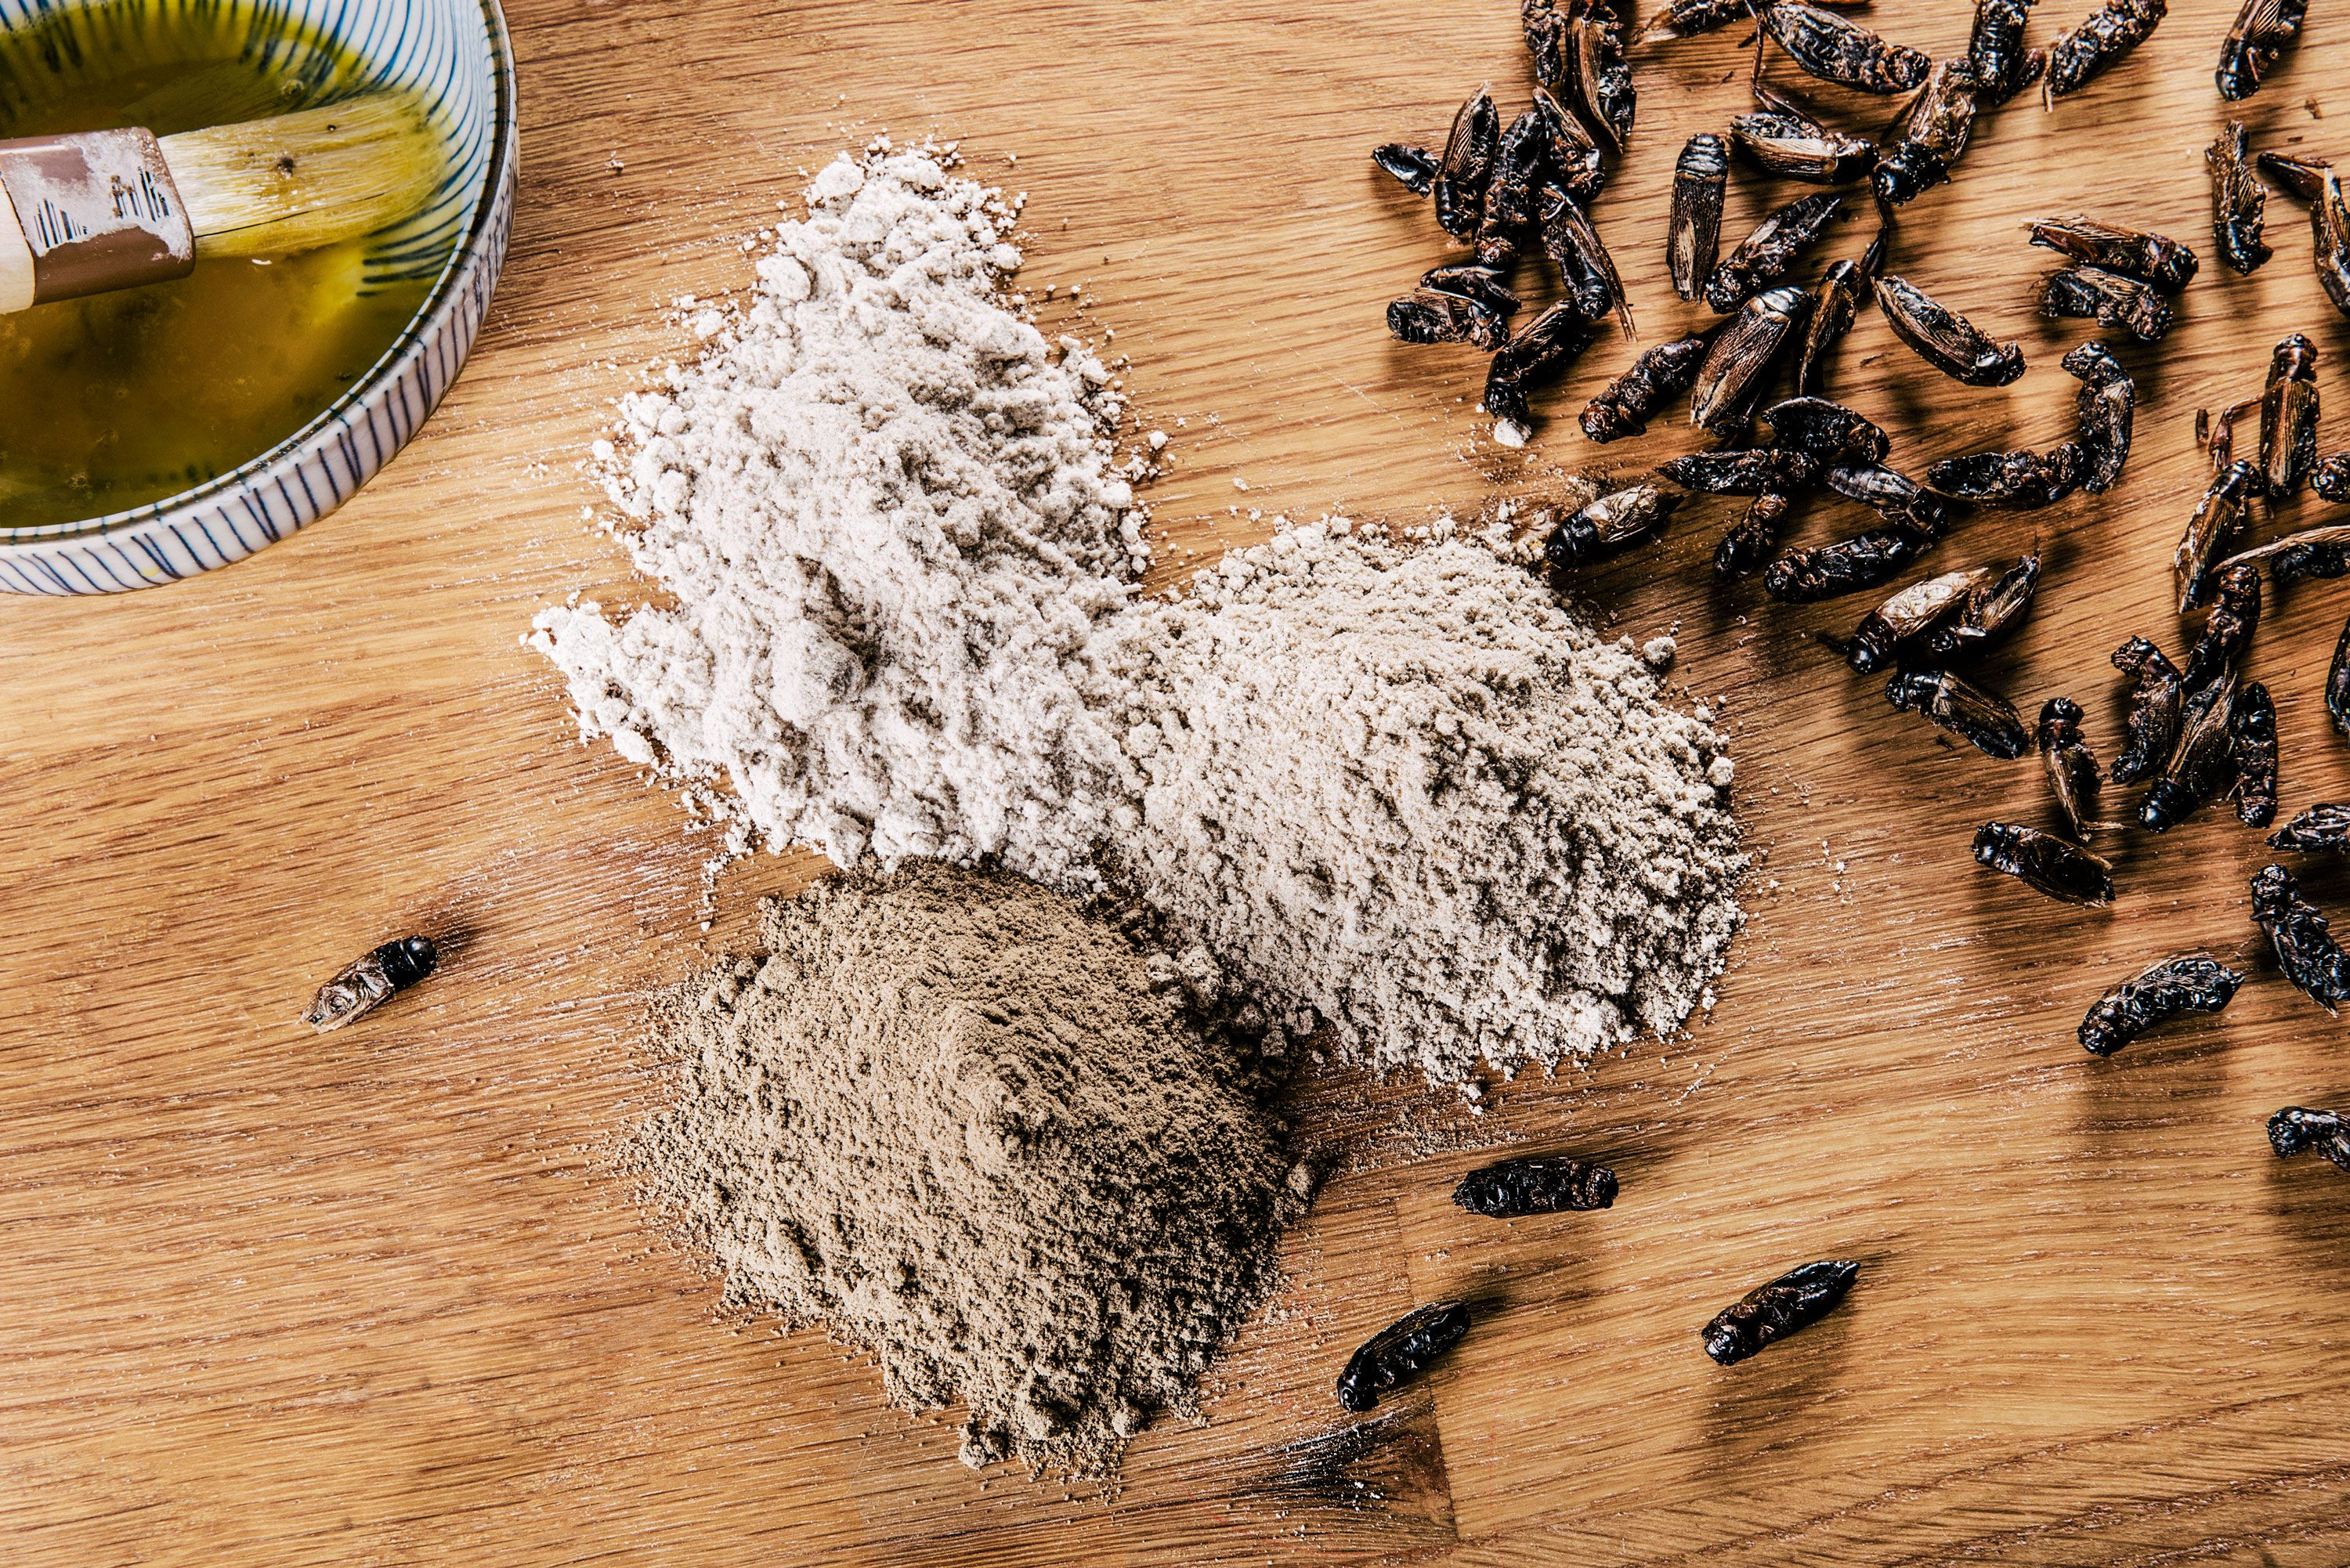 Cooking With Crickets Will Save the World. Here's How To Do It.